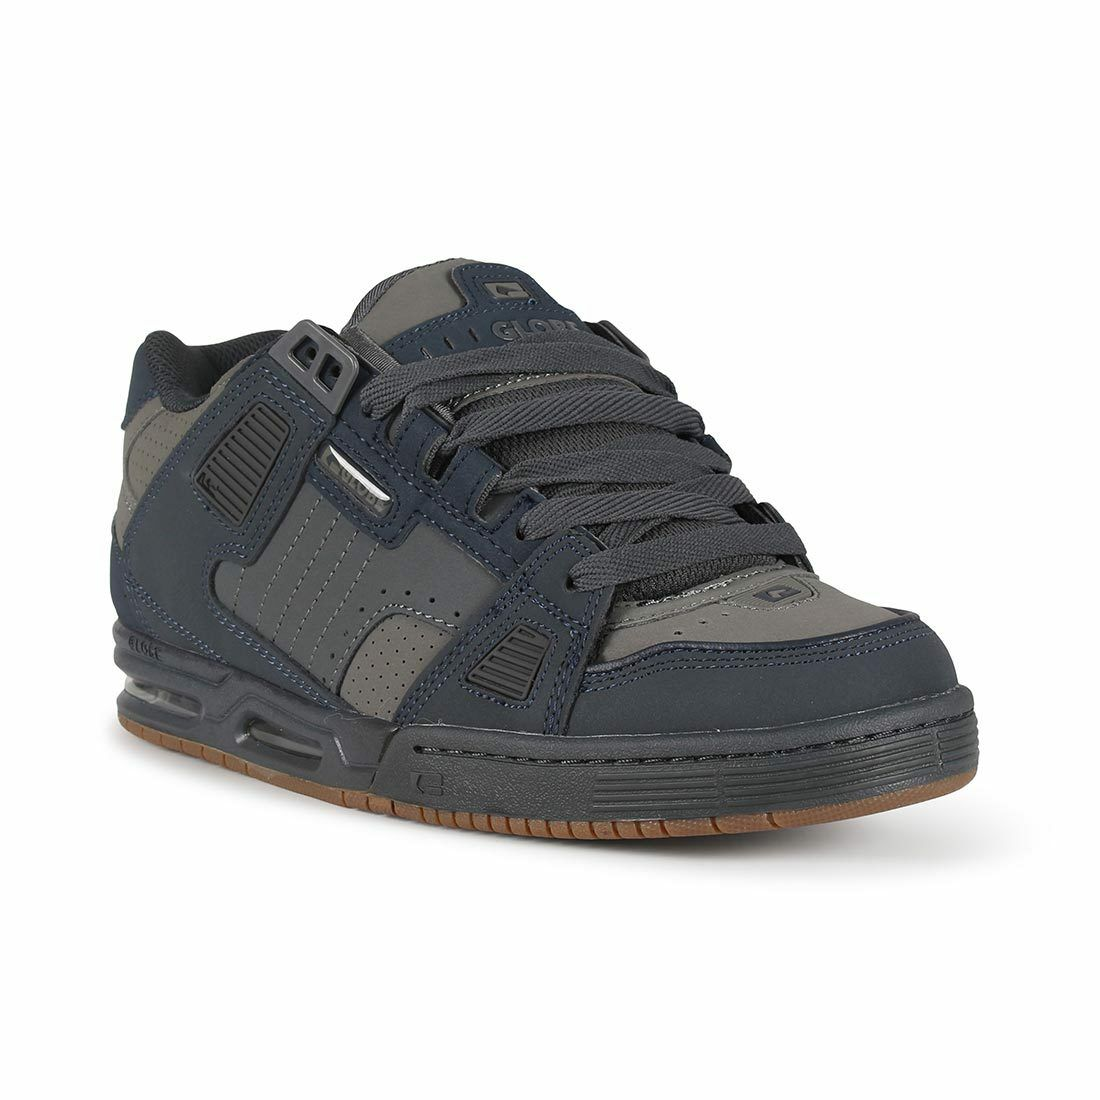 Globe  Sabre shoes - Ebony   Dark Shadow  lightning delivery